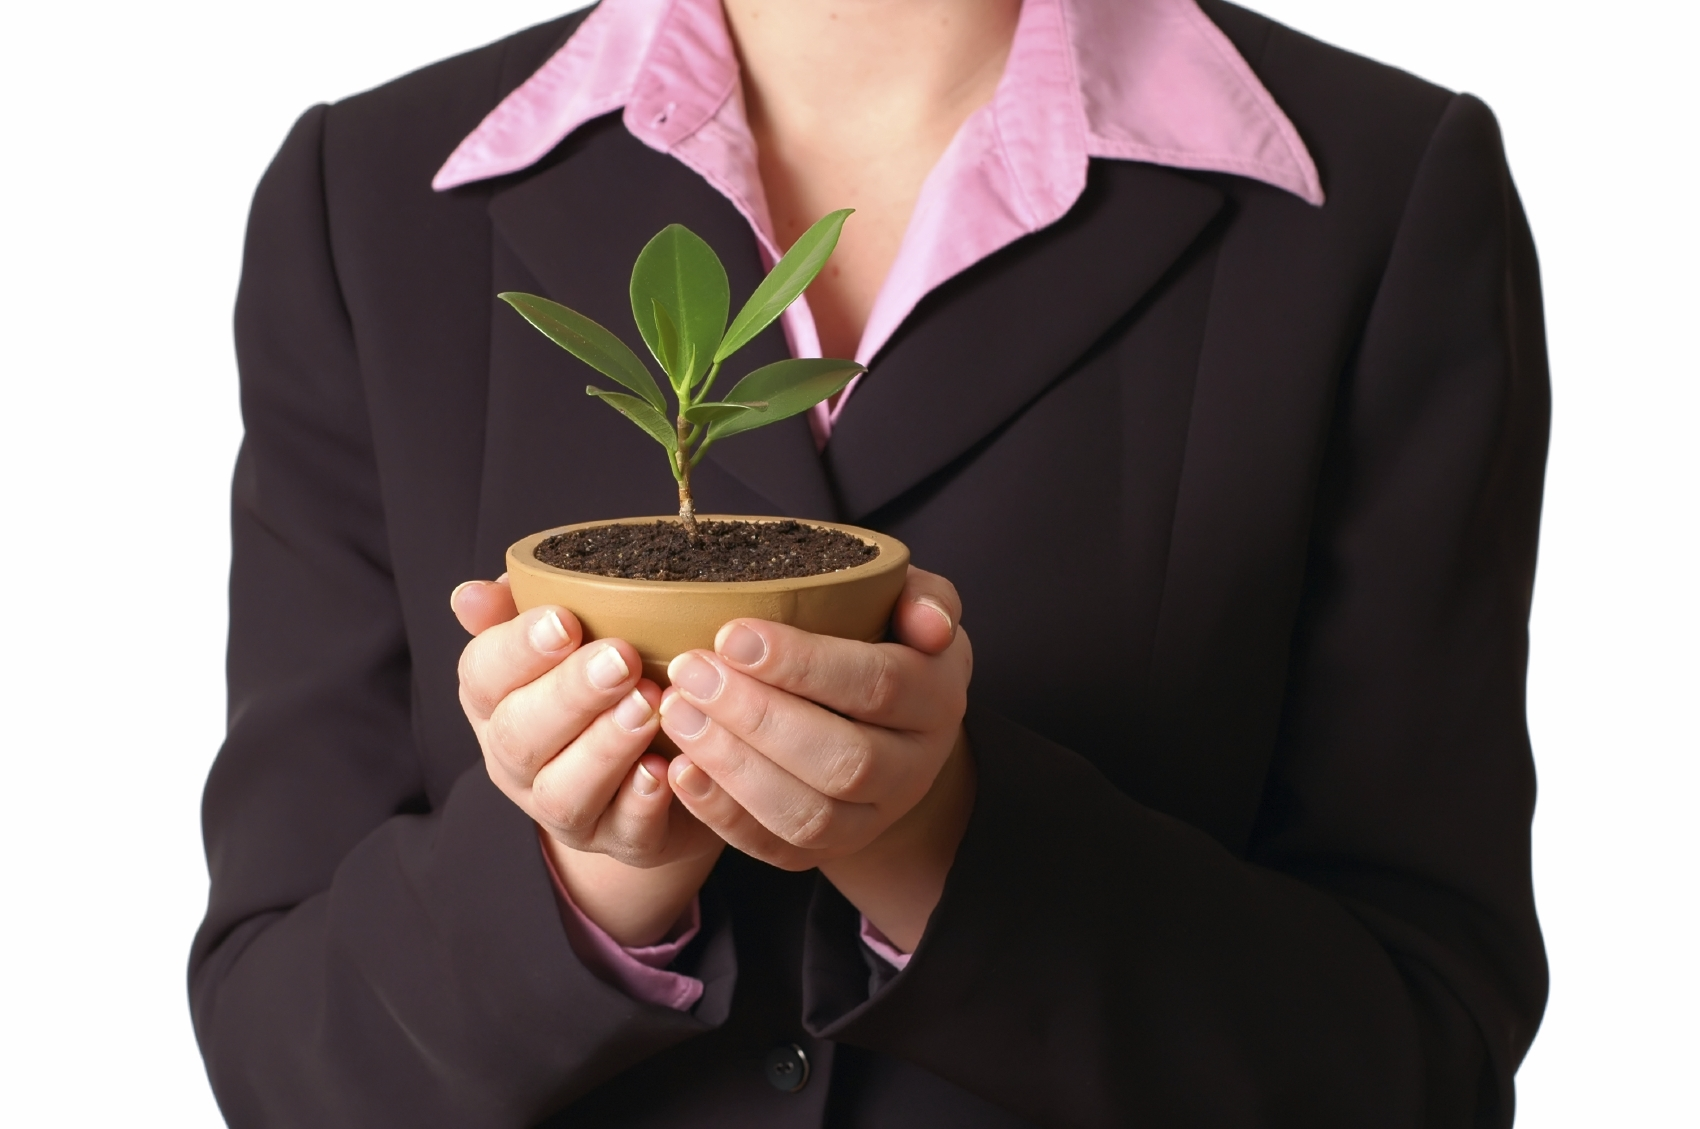 business woman holding a growing plant in her hands